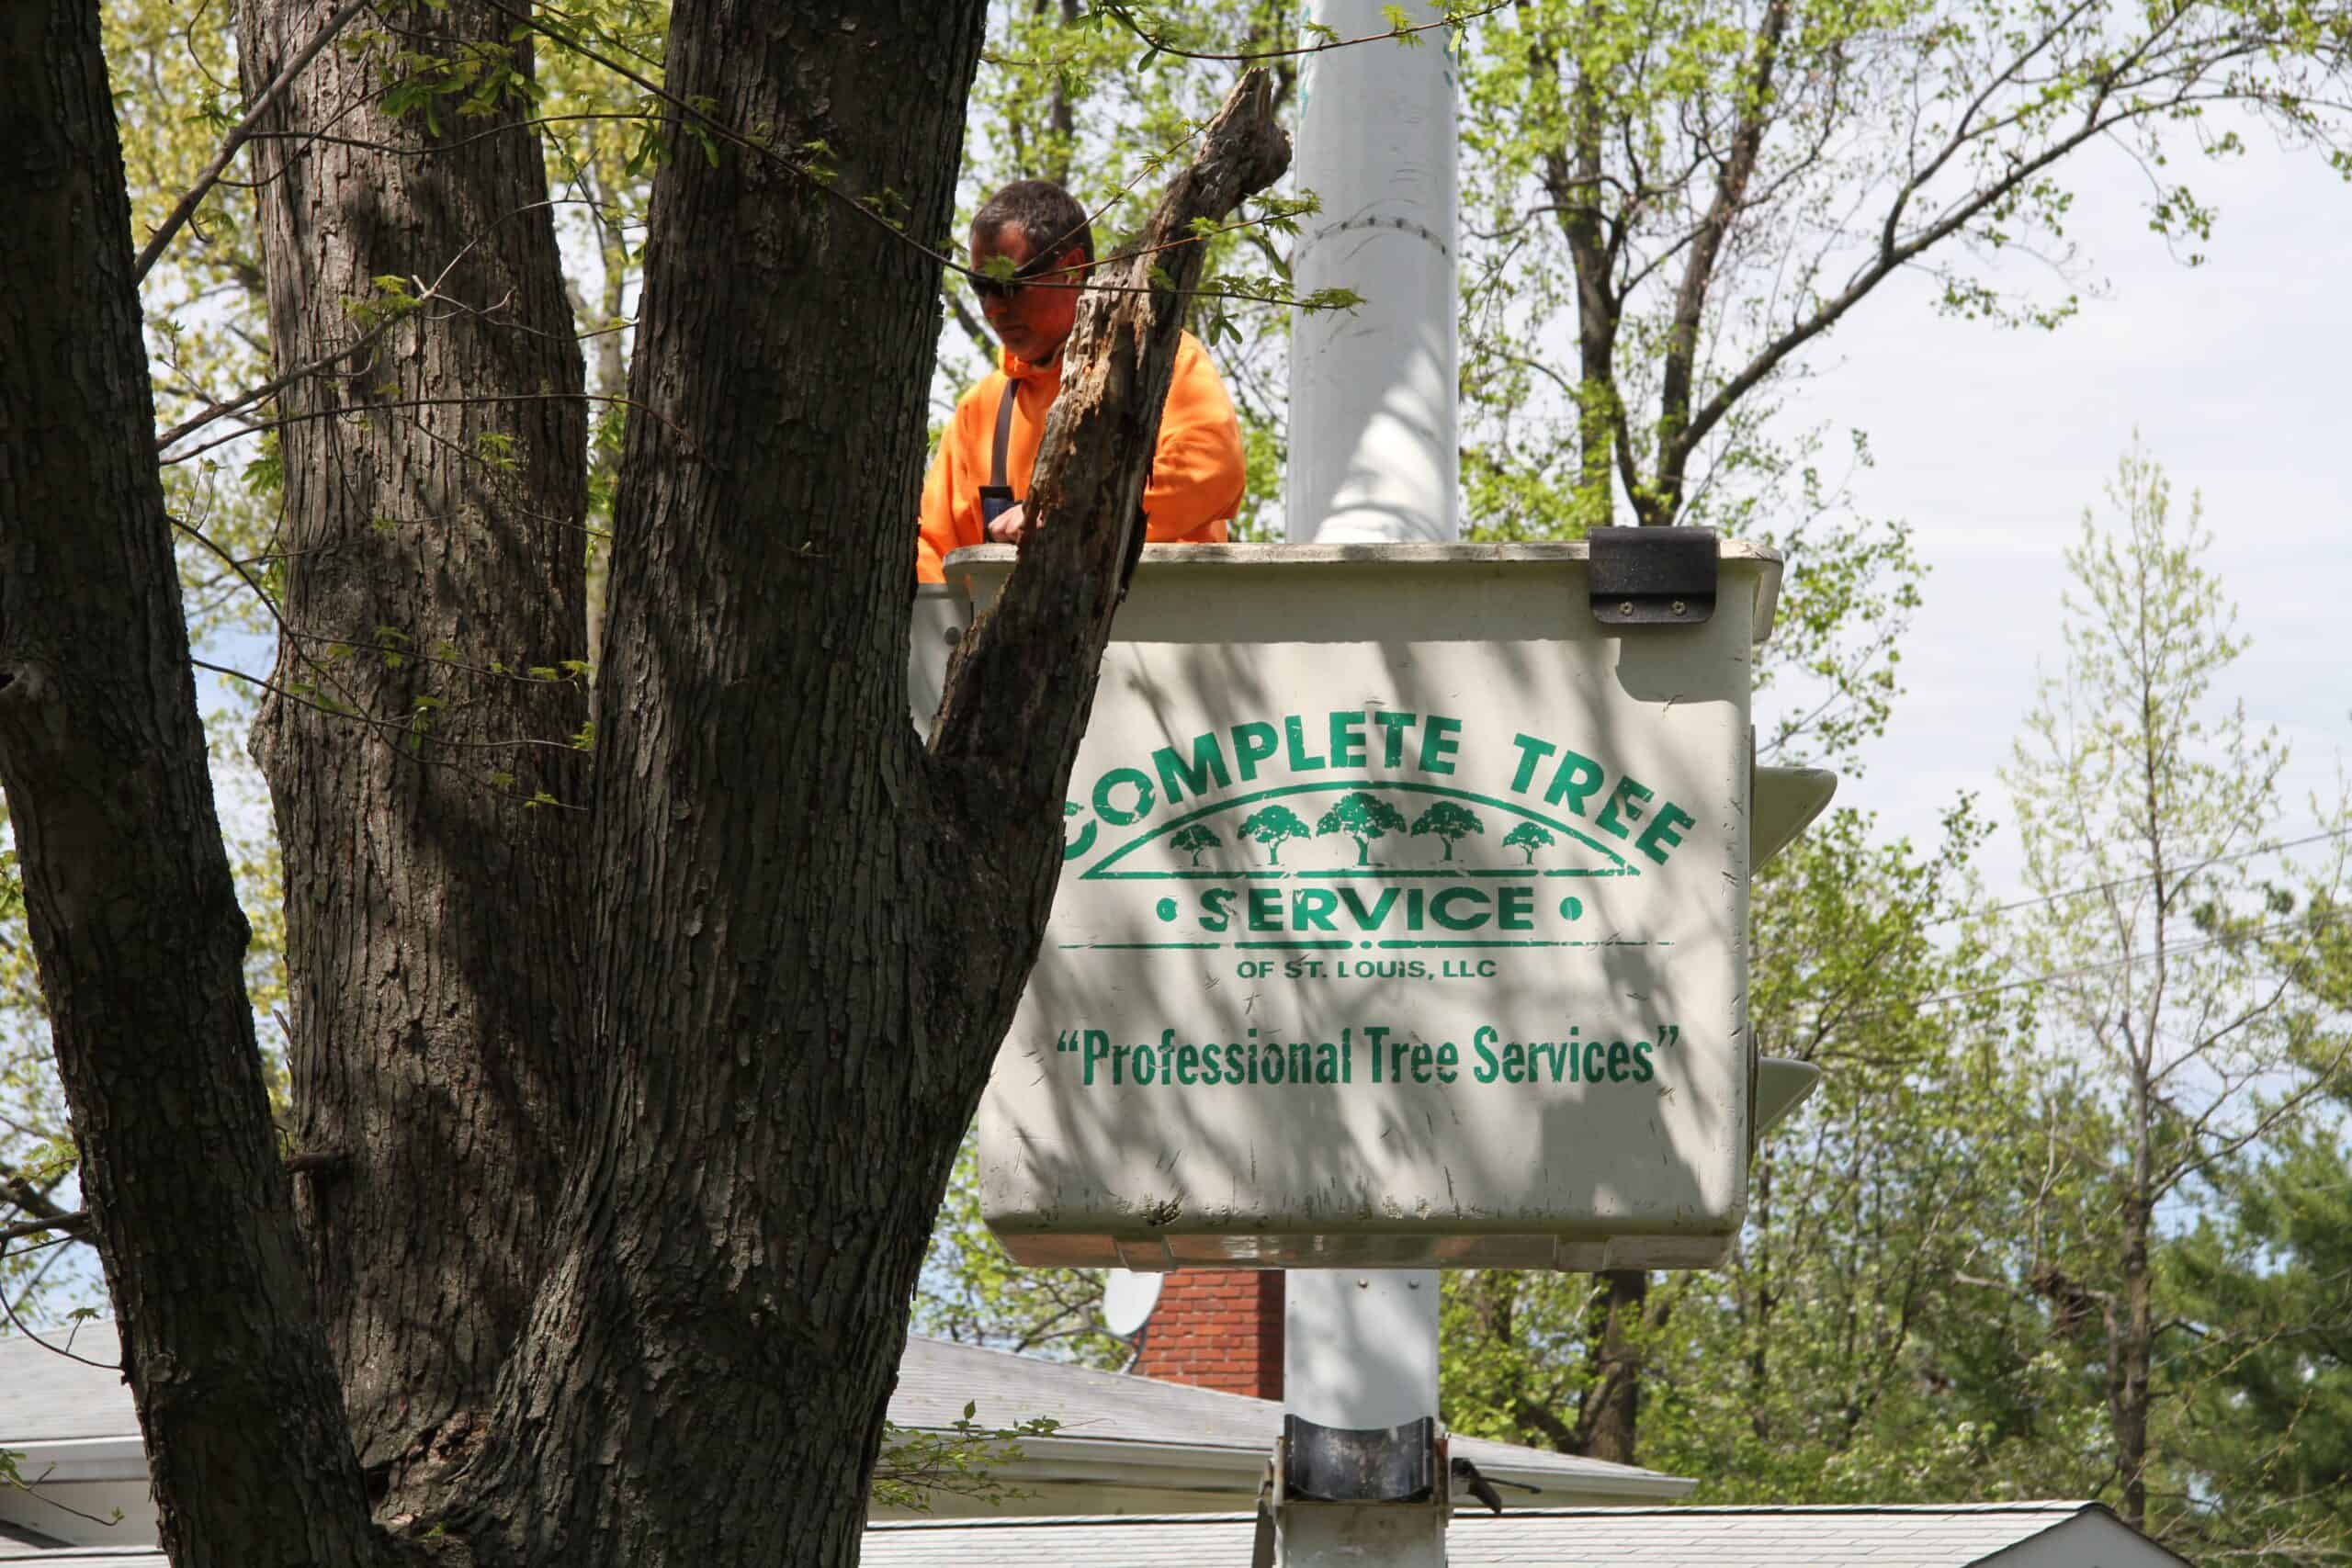 Complete Tree Service, St. Louis, MO